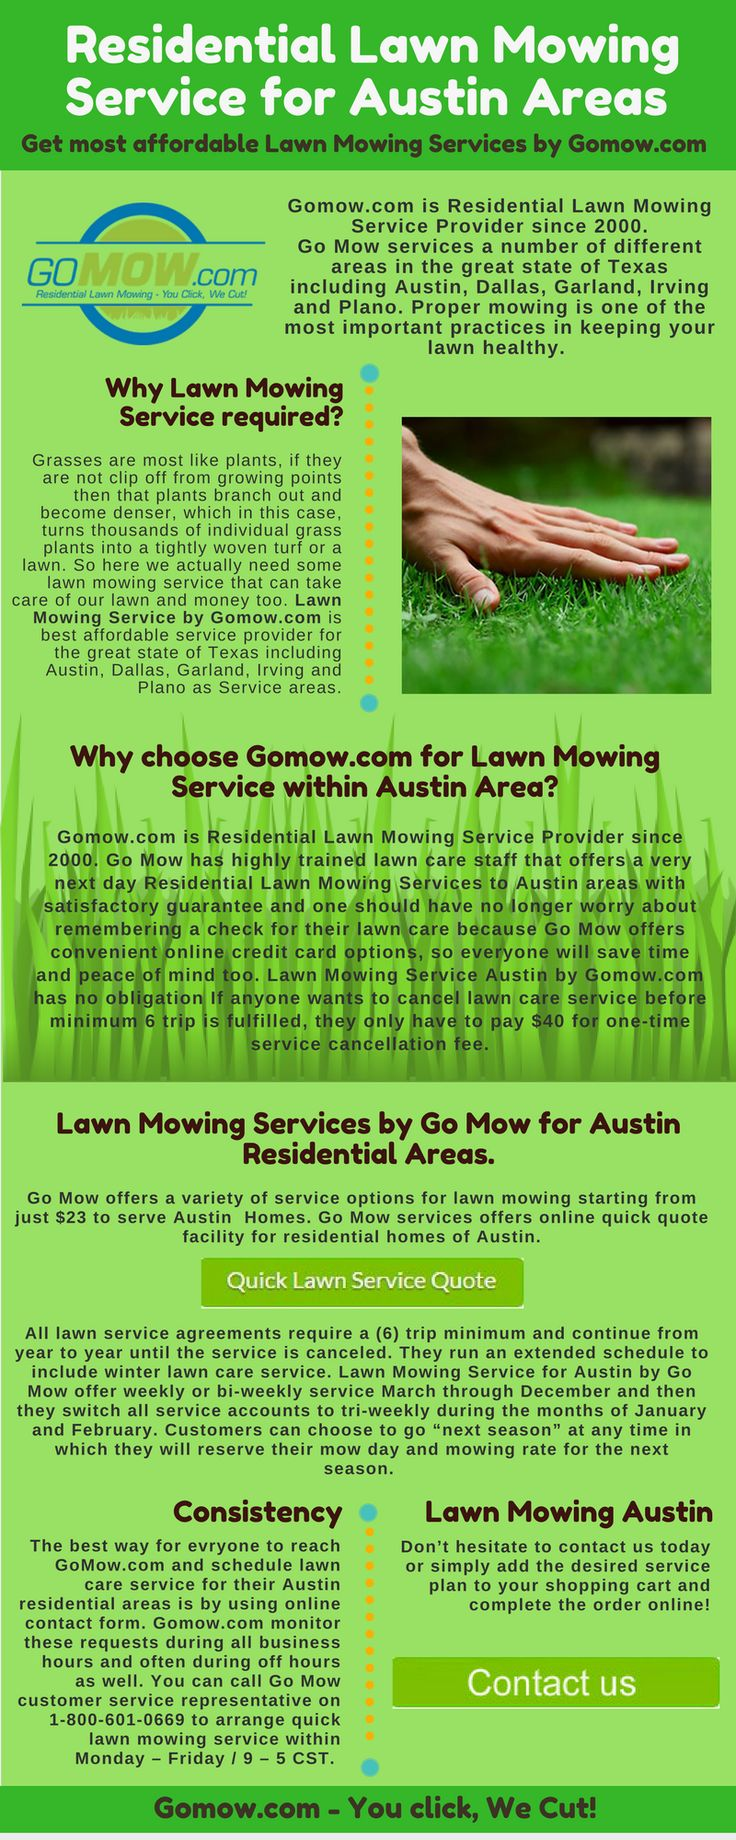 best ideas about mowing services lawn mowing gomow com is residential lawn mowing service provider since 2000 go mow has highly